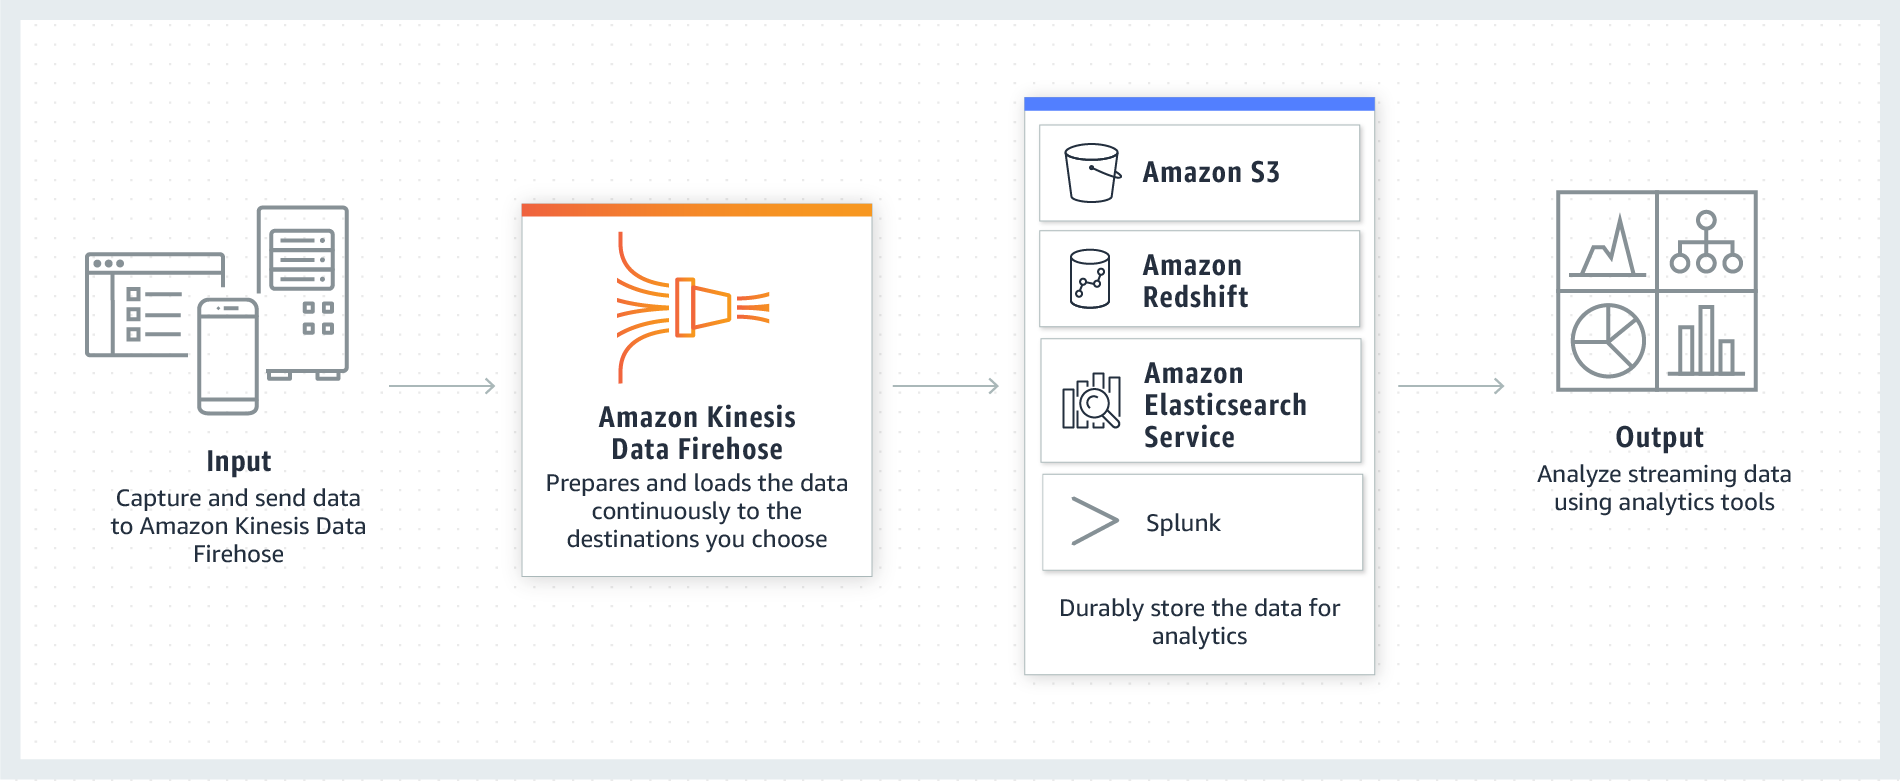 Fonctionnement d'Amazon Kinesis Data Firehose